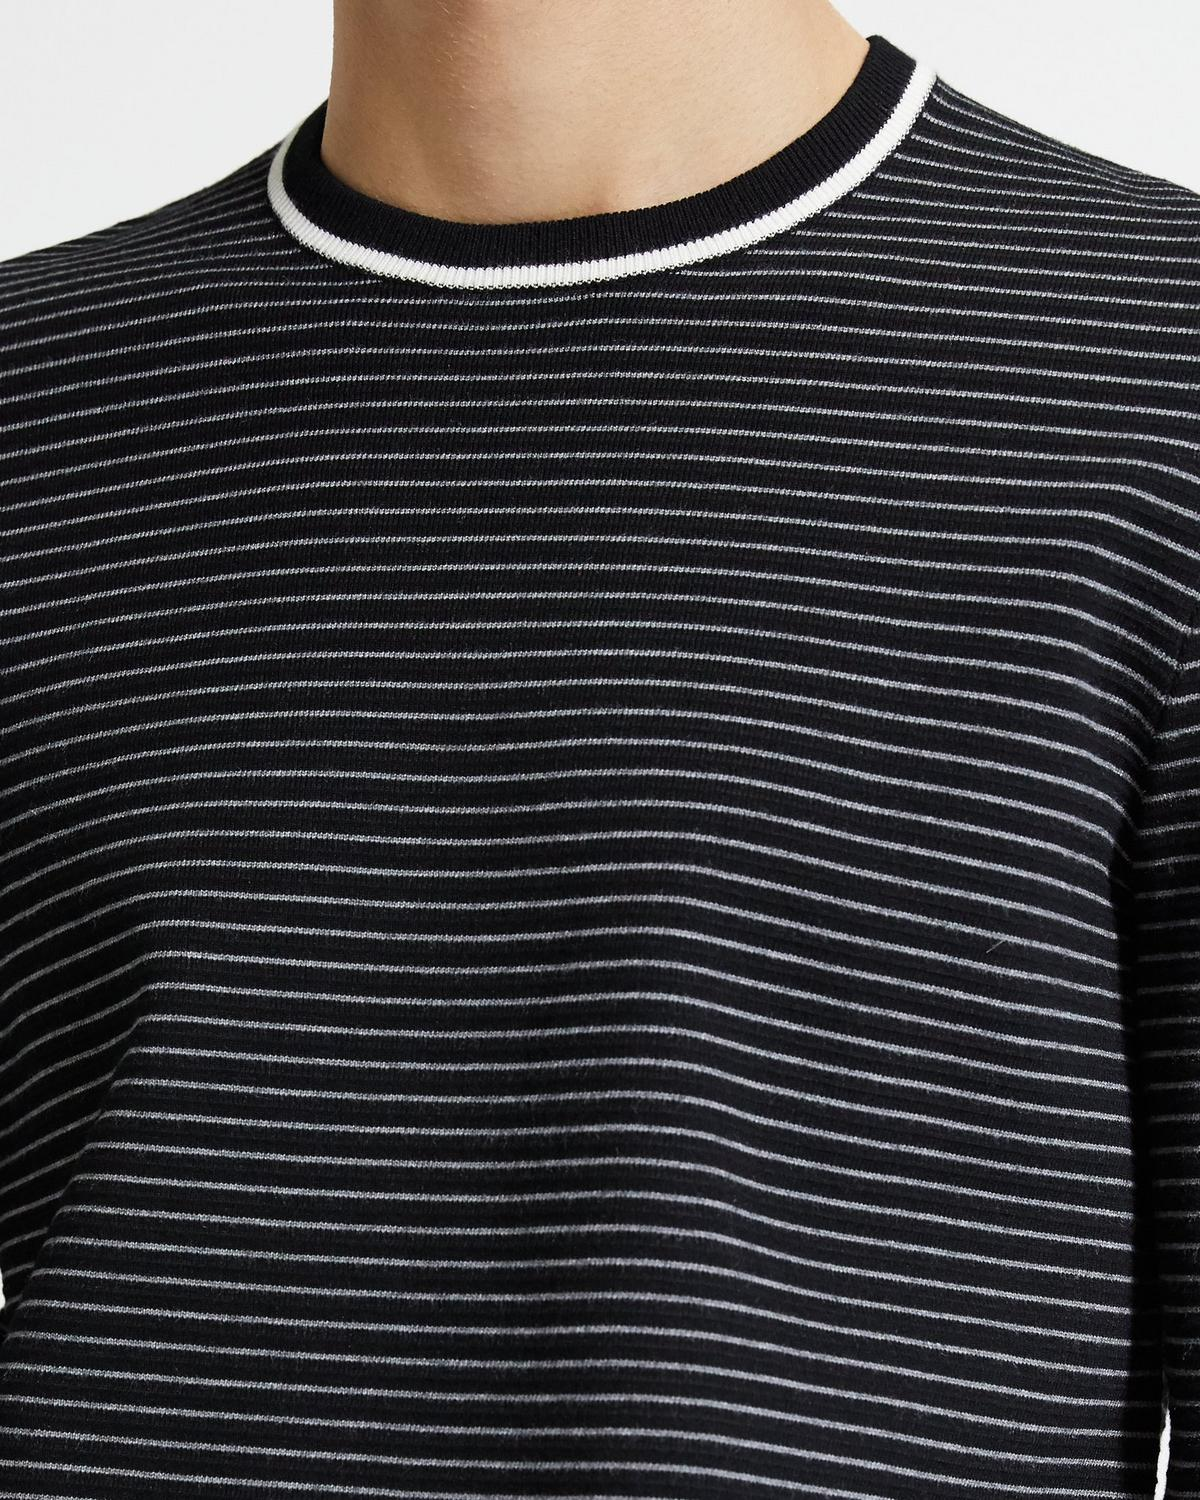 Mr Porter x Theory Long-Sleeve Crewneck Sweater